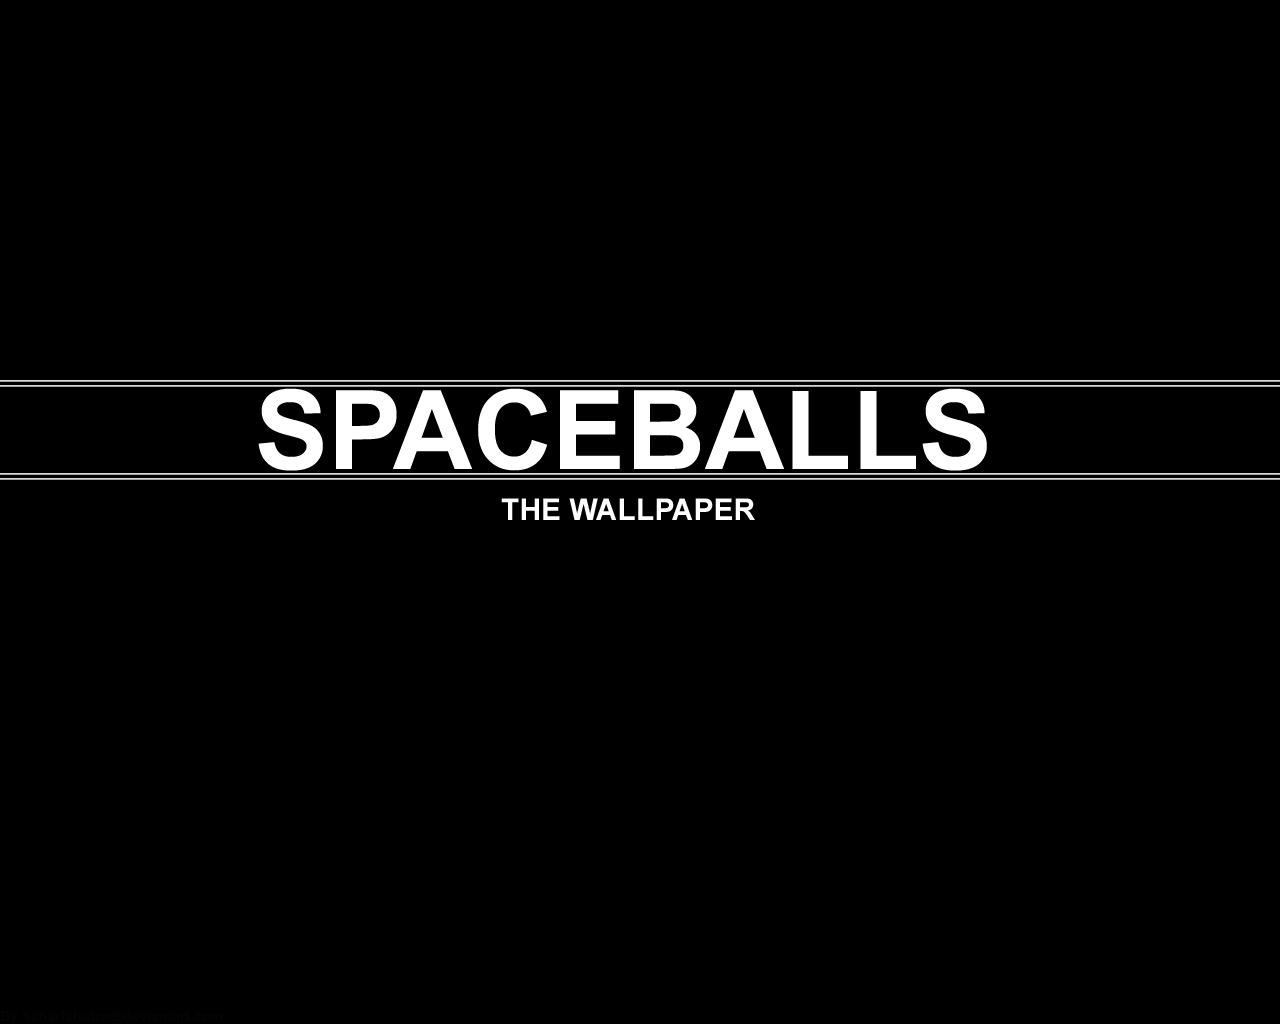 SPACEBALLS THE WALLPAPER by Skarpskyter